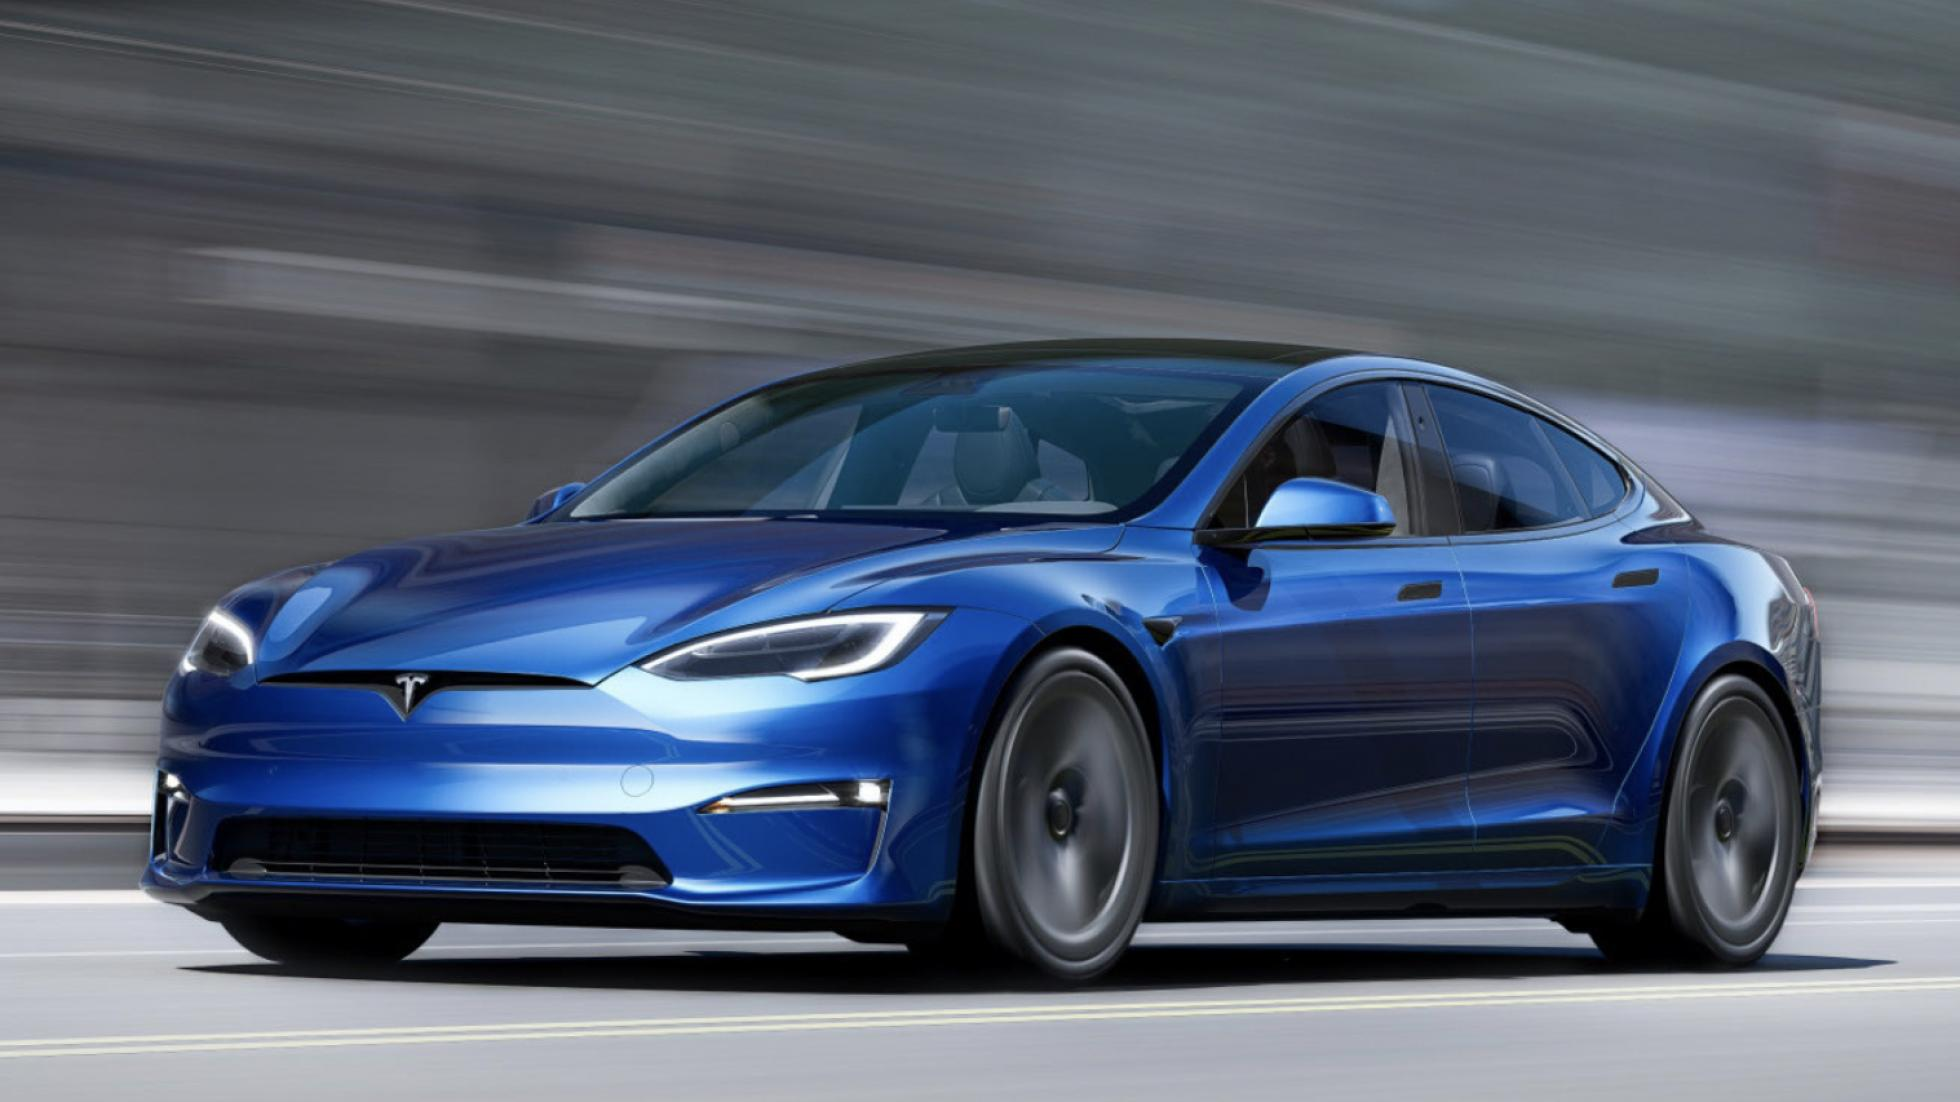 The Tesla Model S  - Blue, On the Road